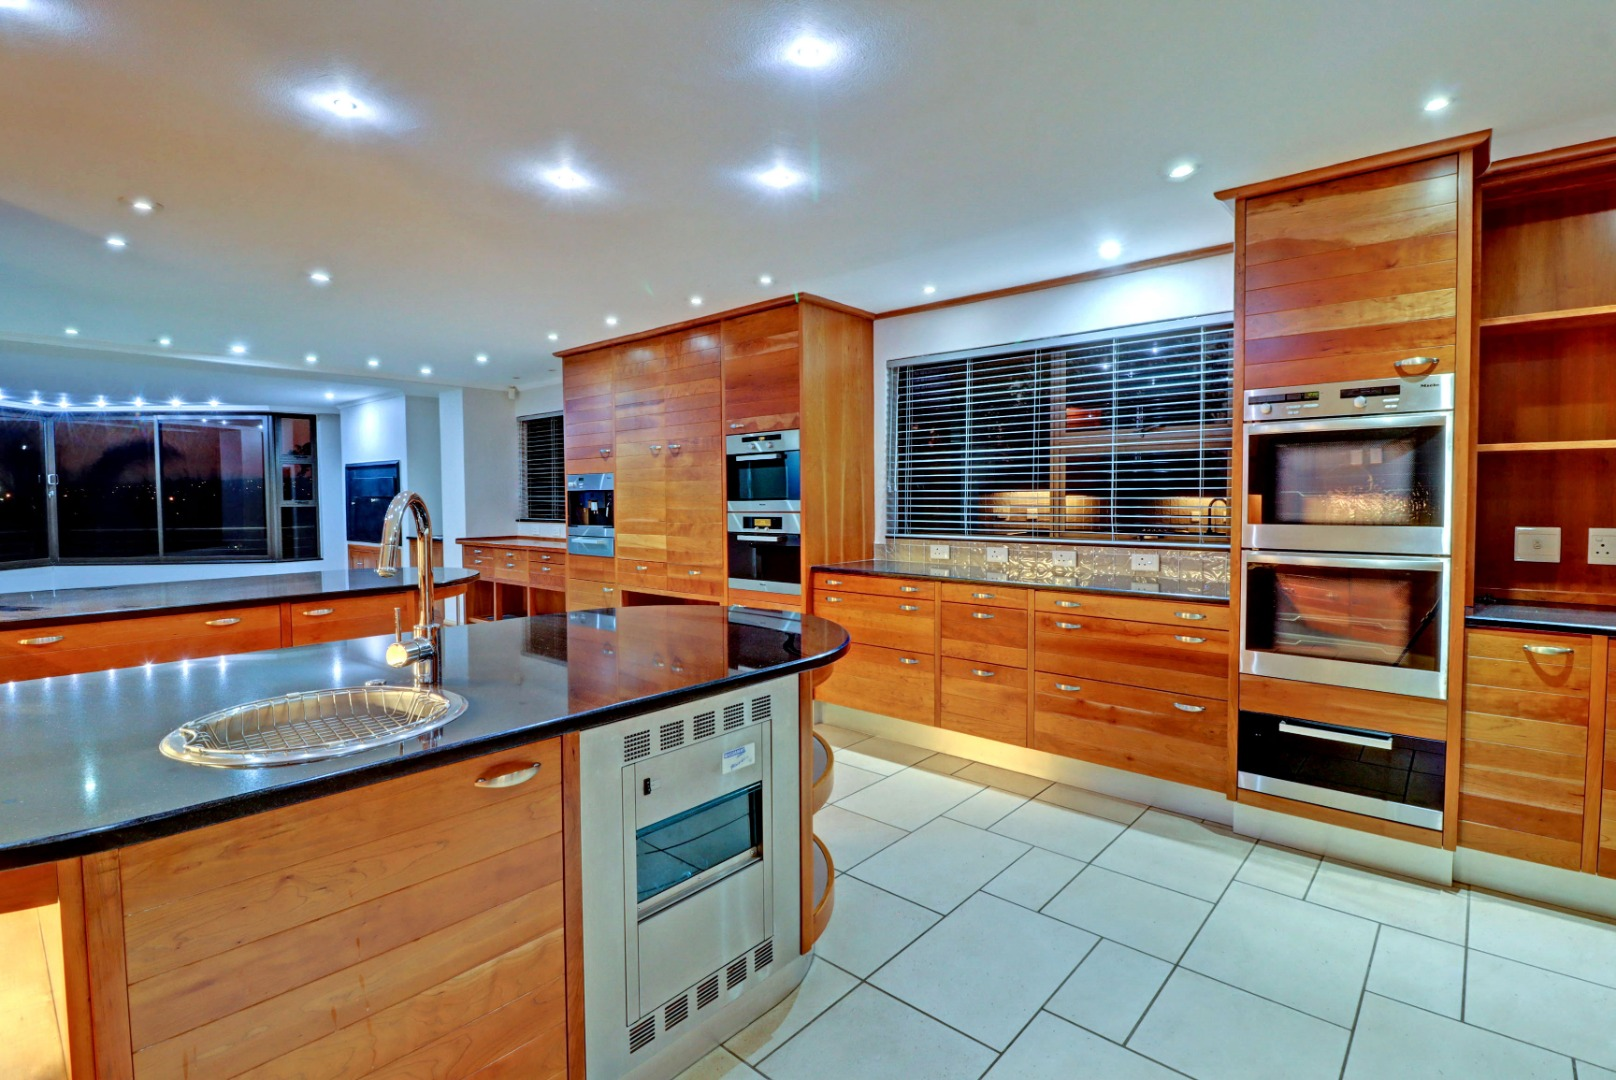 6 Bedroom House For Sale in Woodhill